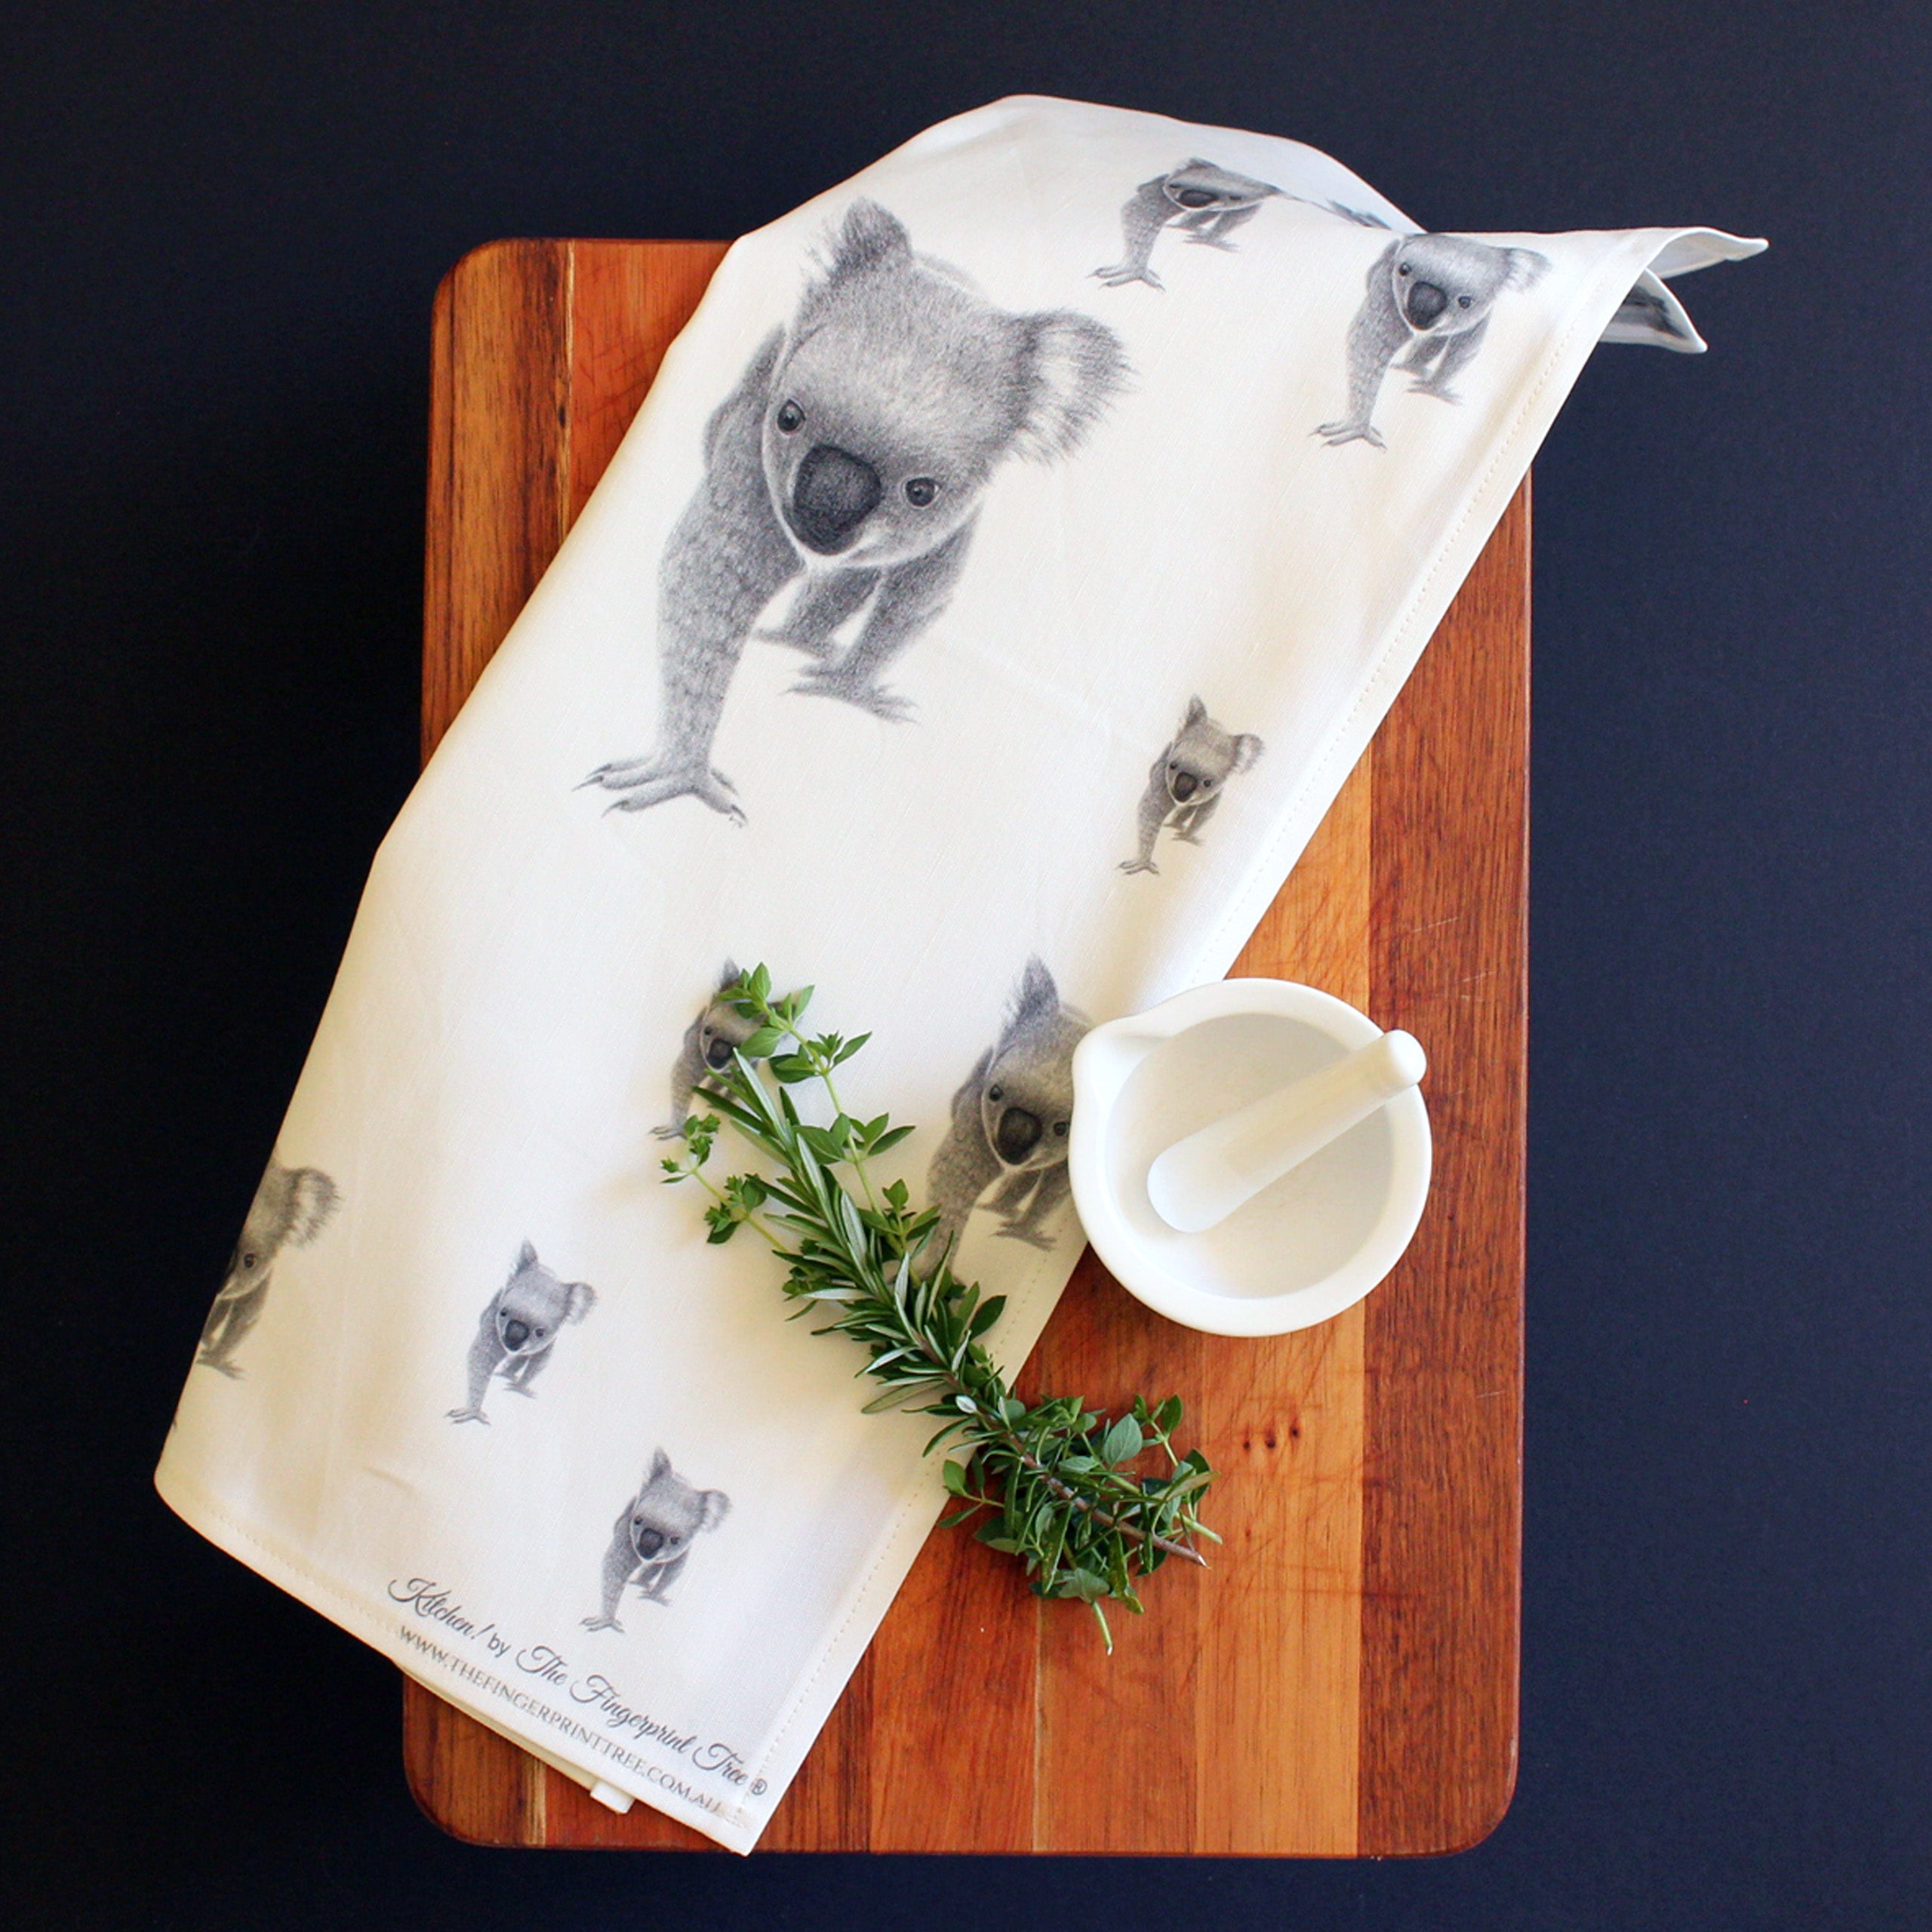 Koala tea towel